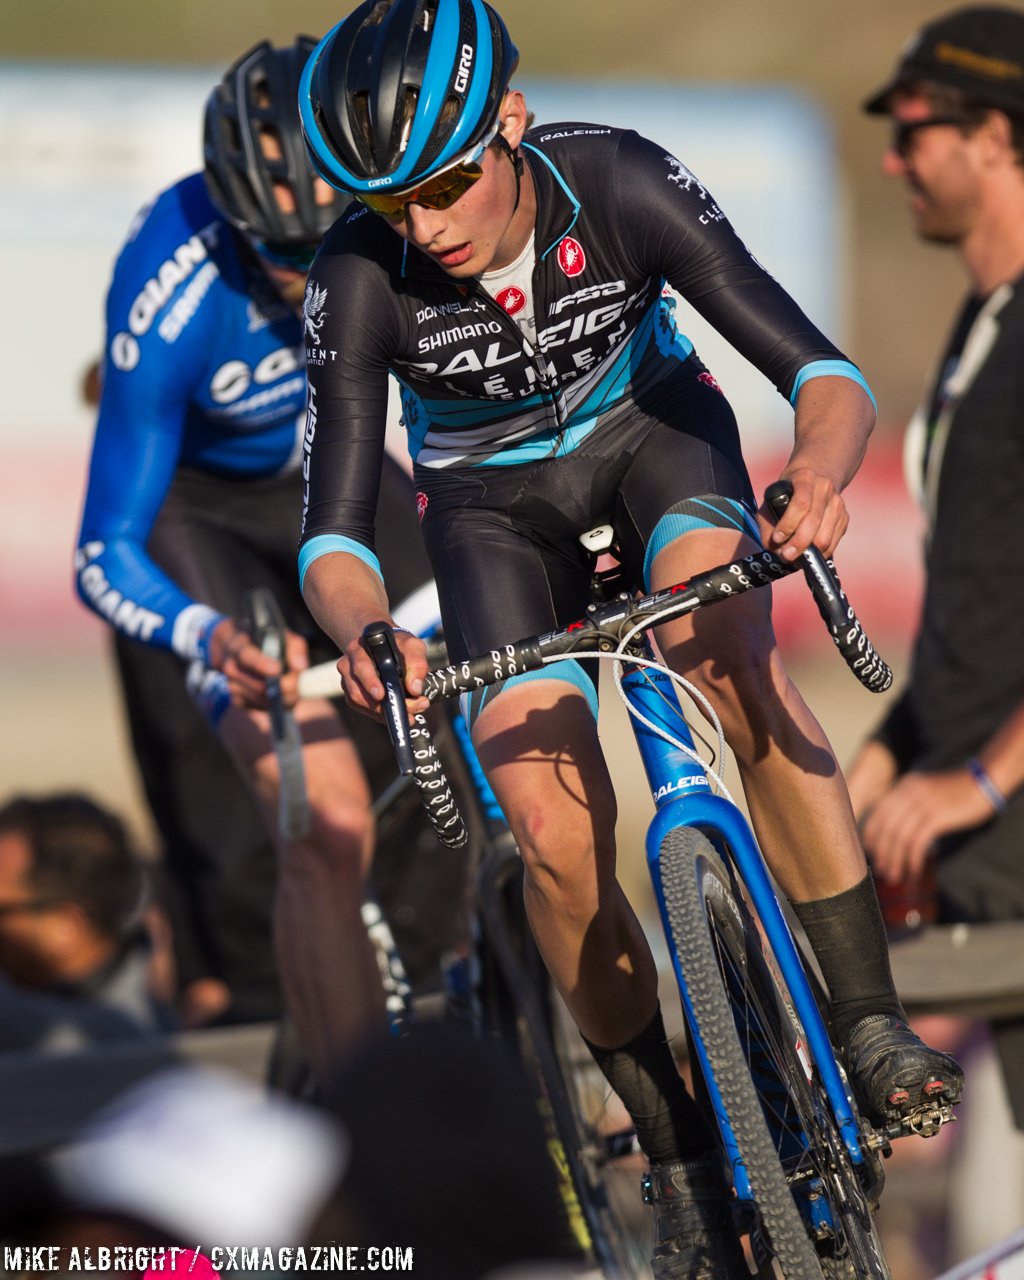 lance-haidet-raleigh-clements-newest-addition-rode-with-the-mens-elite-race-and-just-missed-the-extended-podium-in-sixth-place-matthew-lasala-cyclocross-magazine